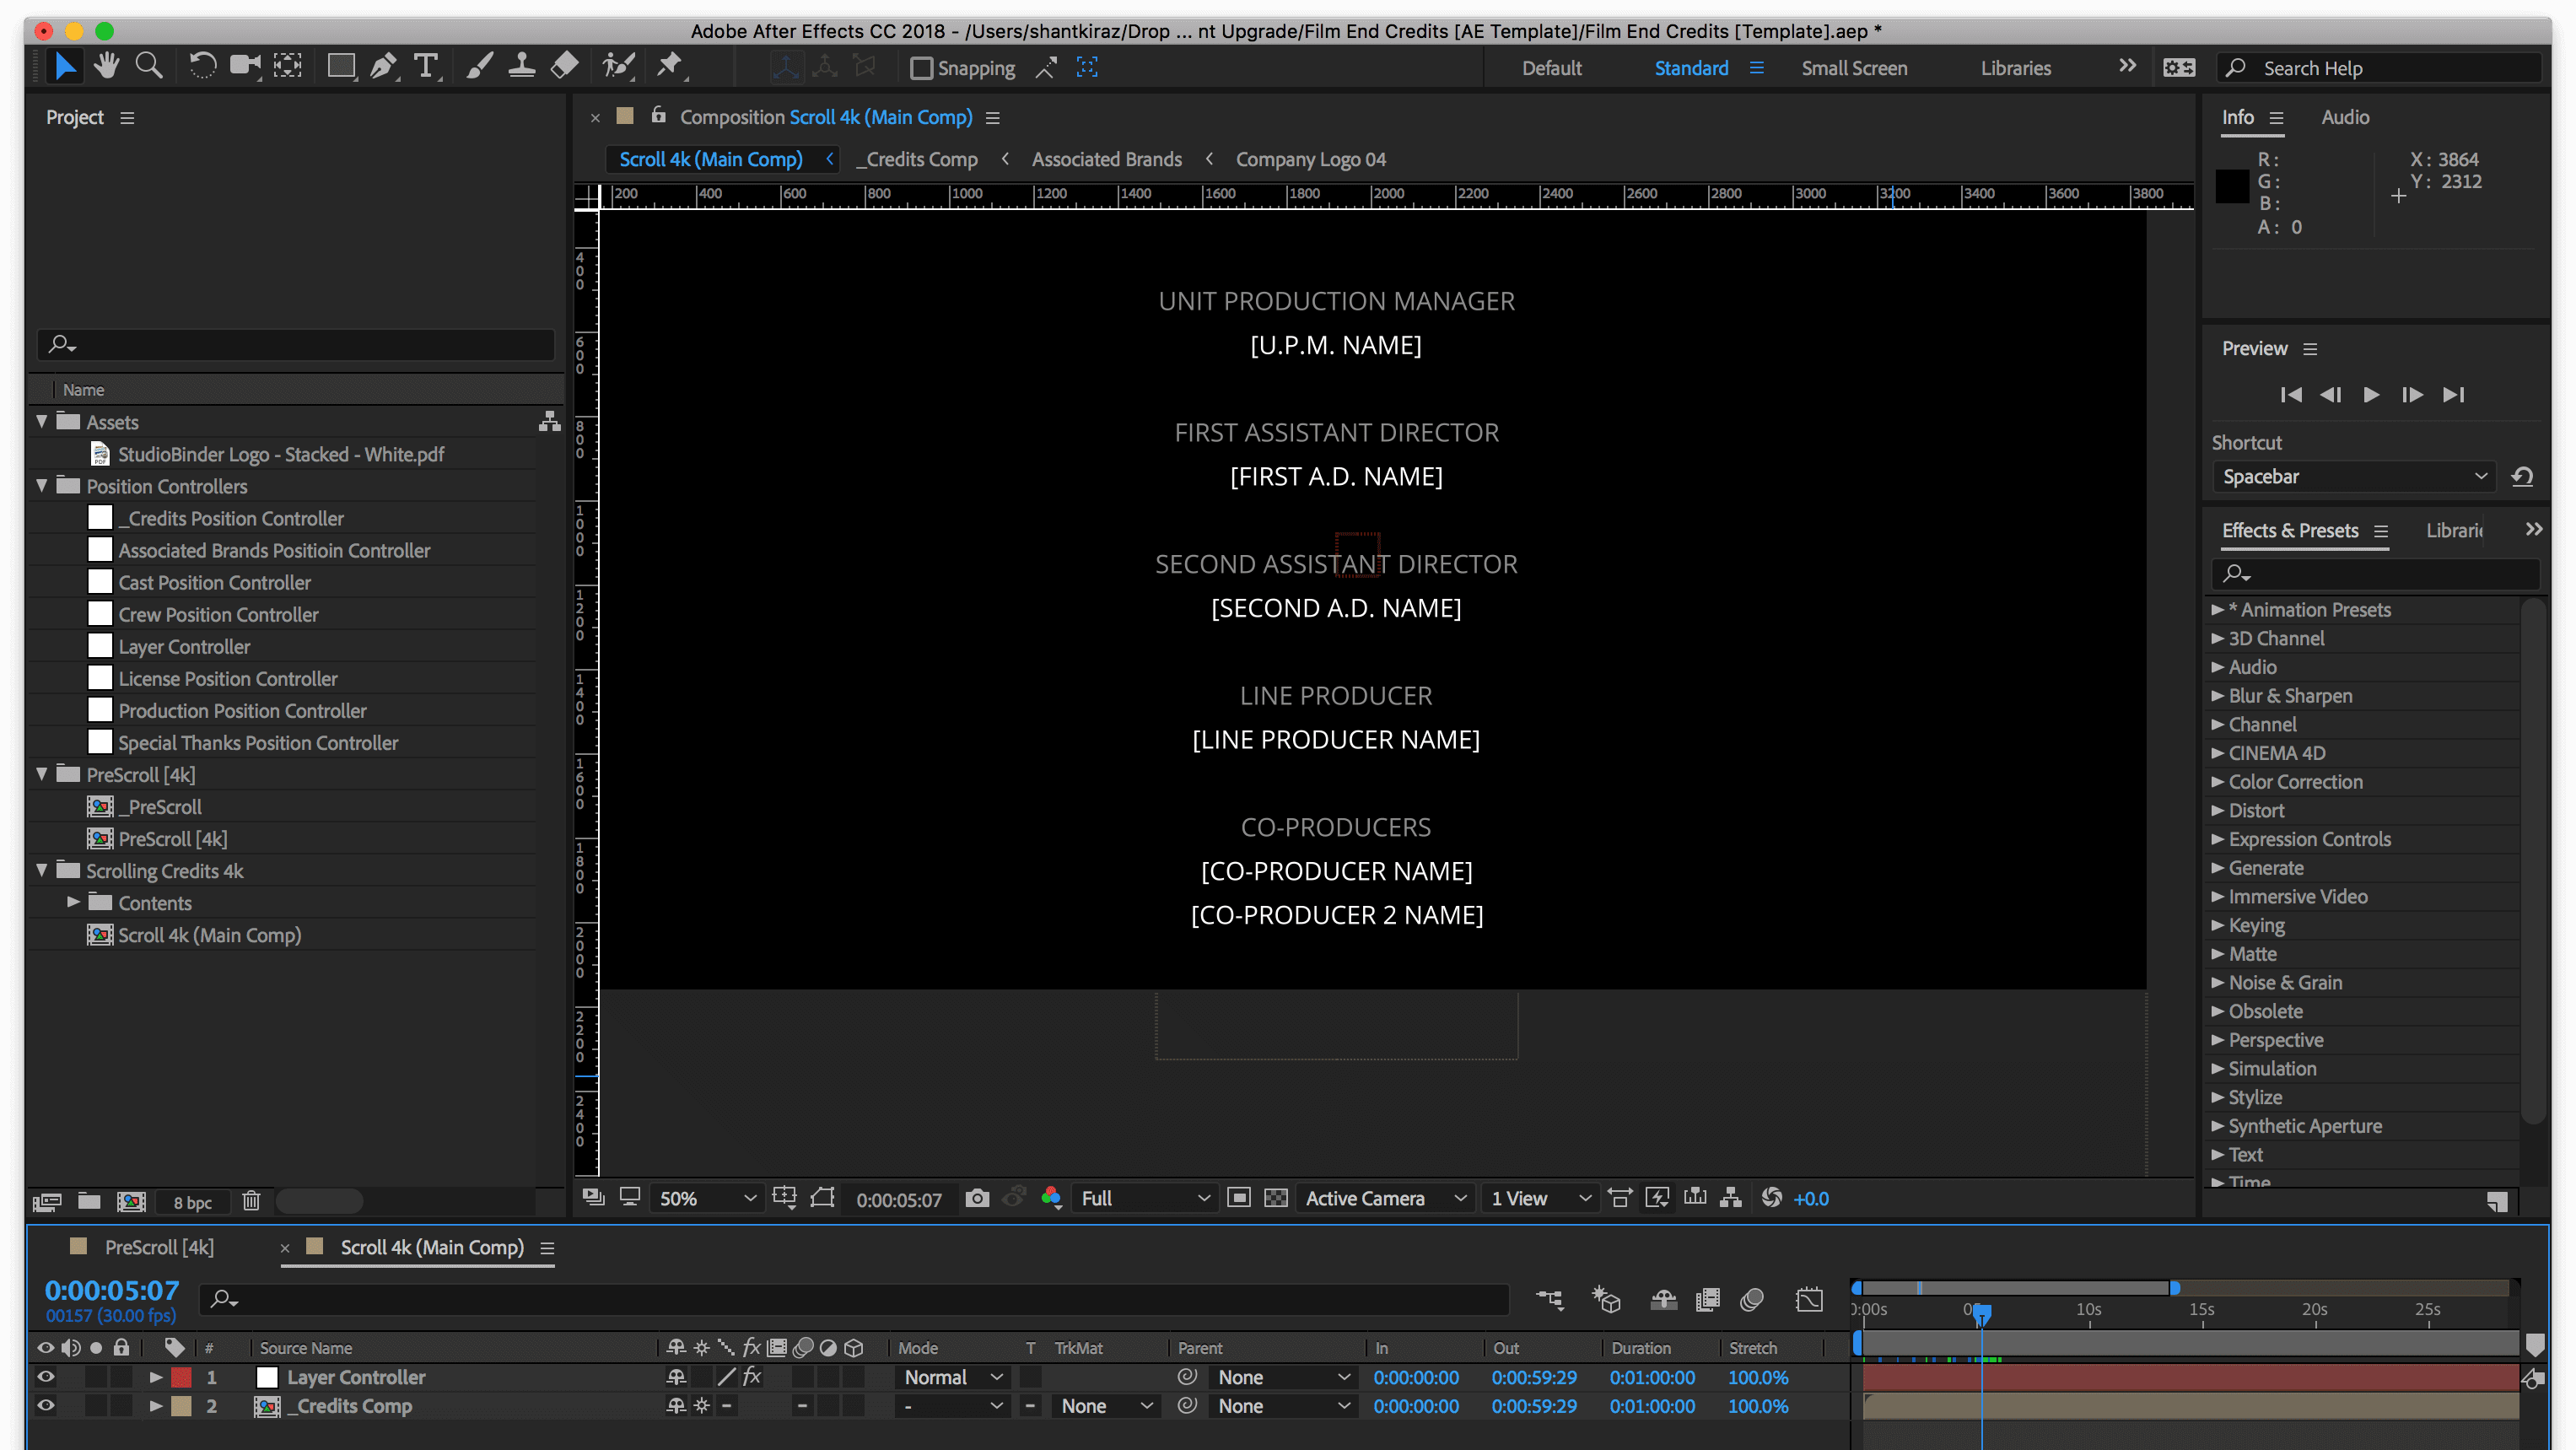 Film Credits Hierarchy Template - Free Adobe After Effects Template - StudioBinder